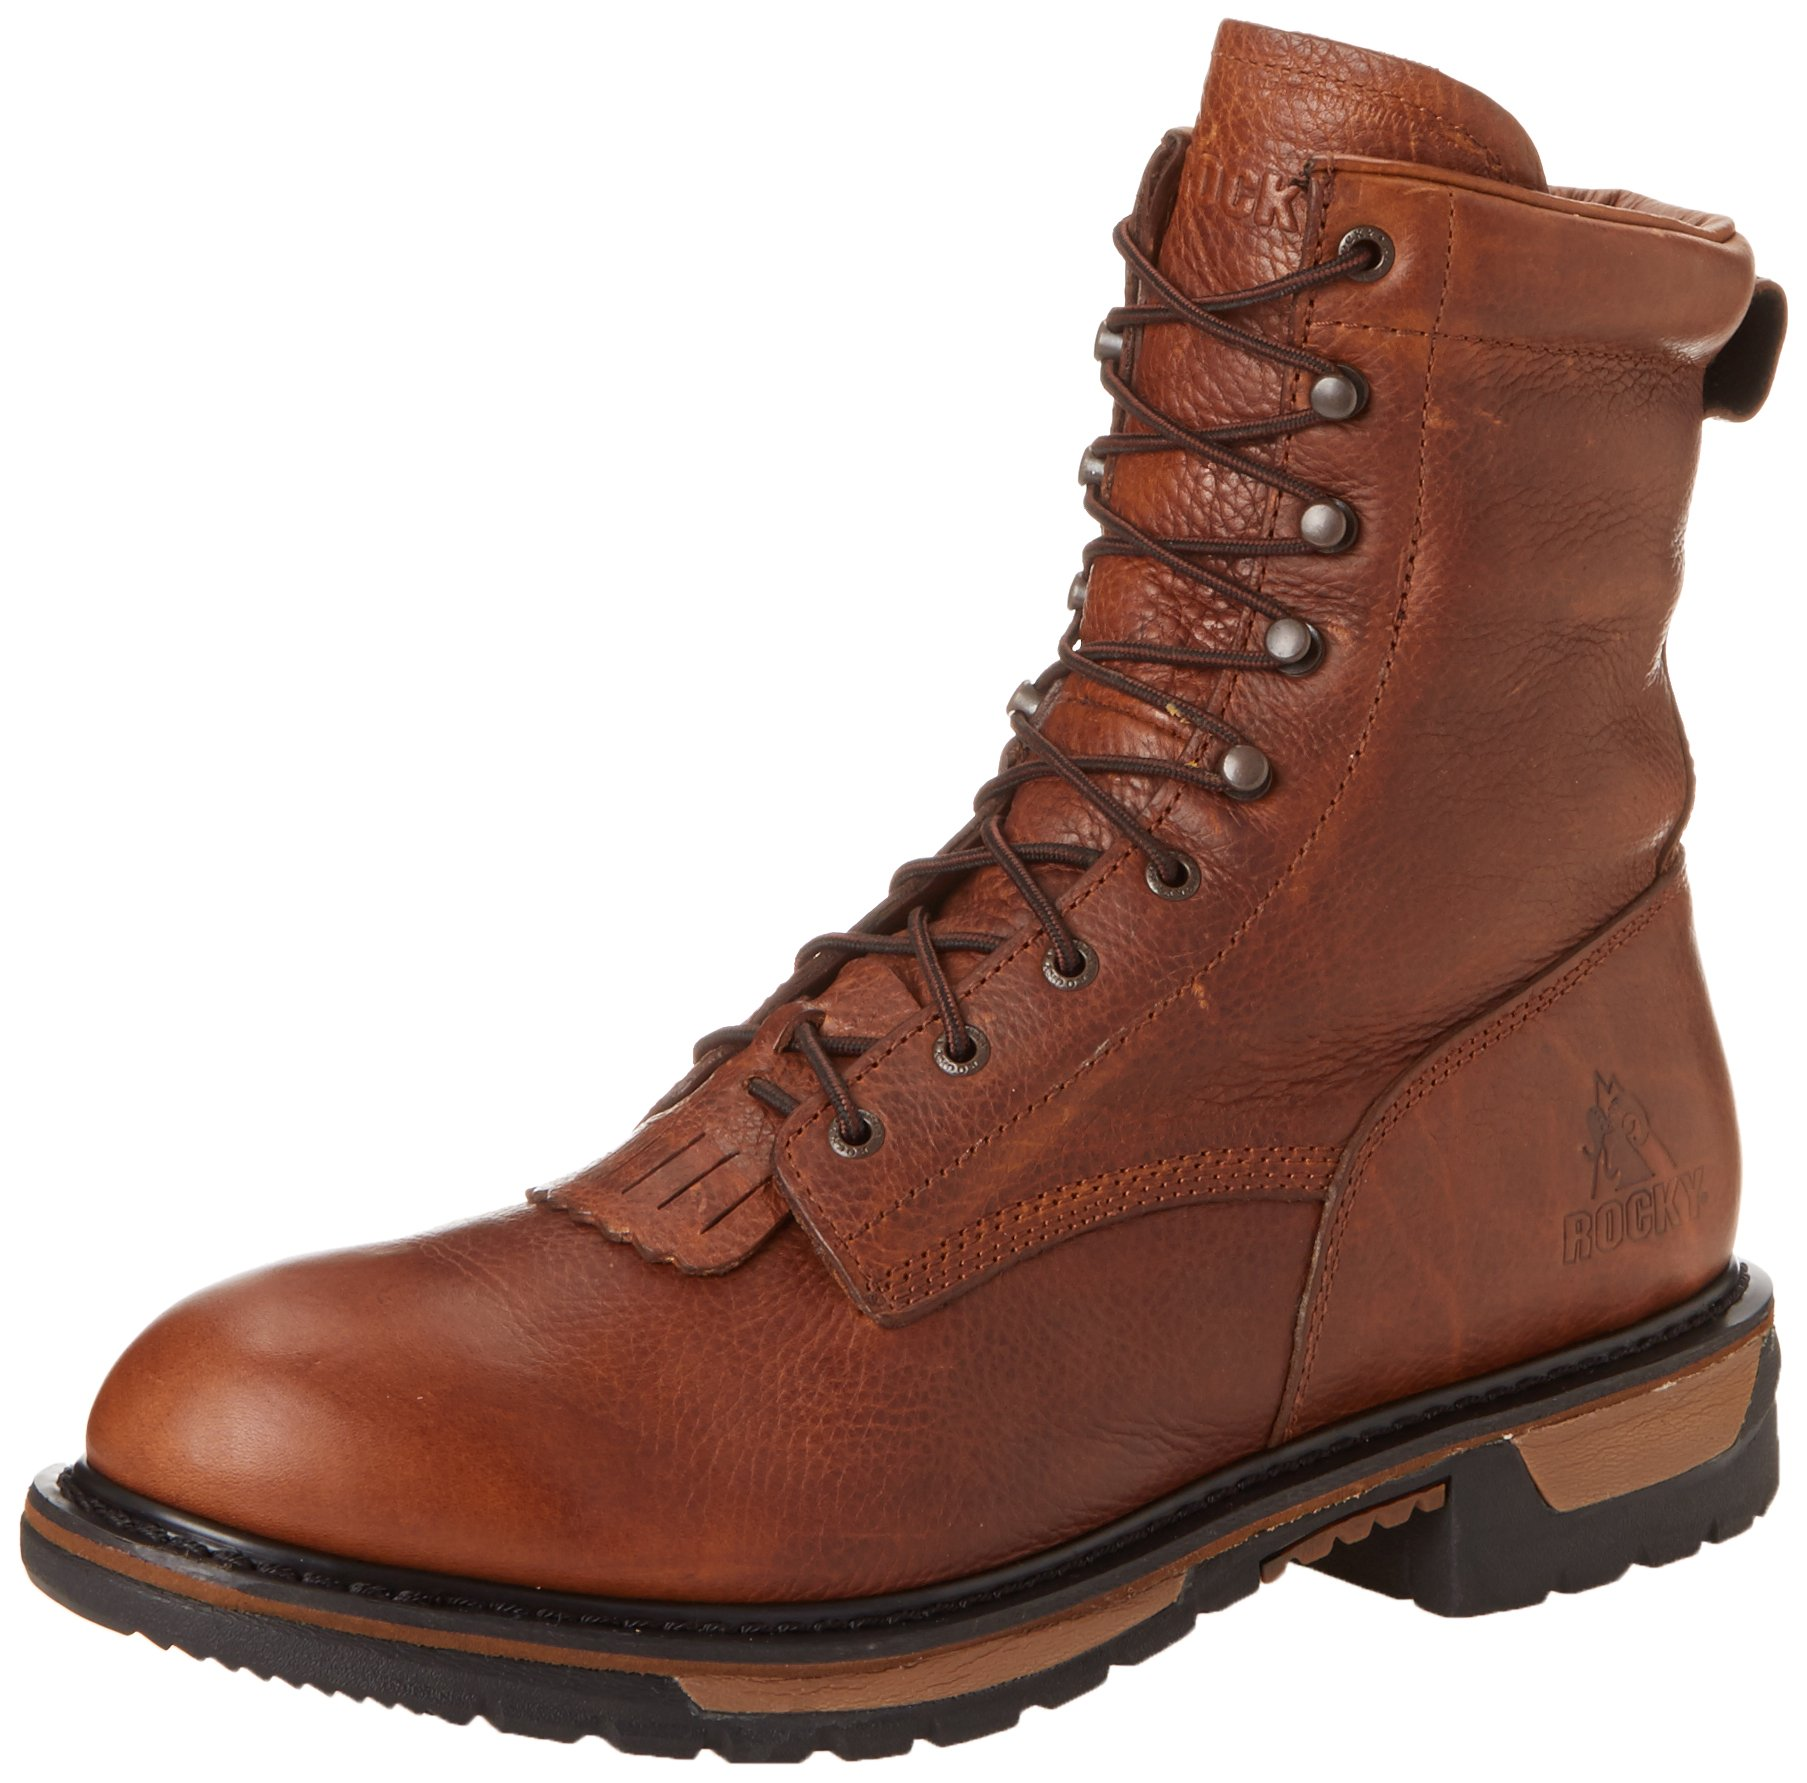 Rocky Men's Original Ride Lacer Pitstop Work Boot,Tan Pitstop,9.5 M US by Rocky